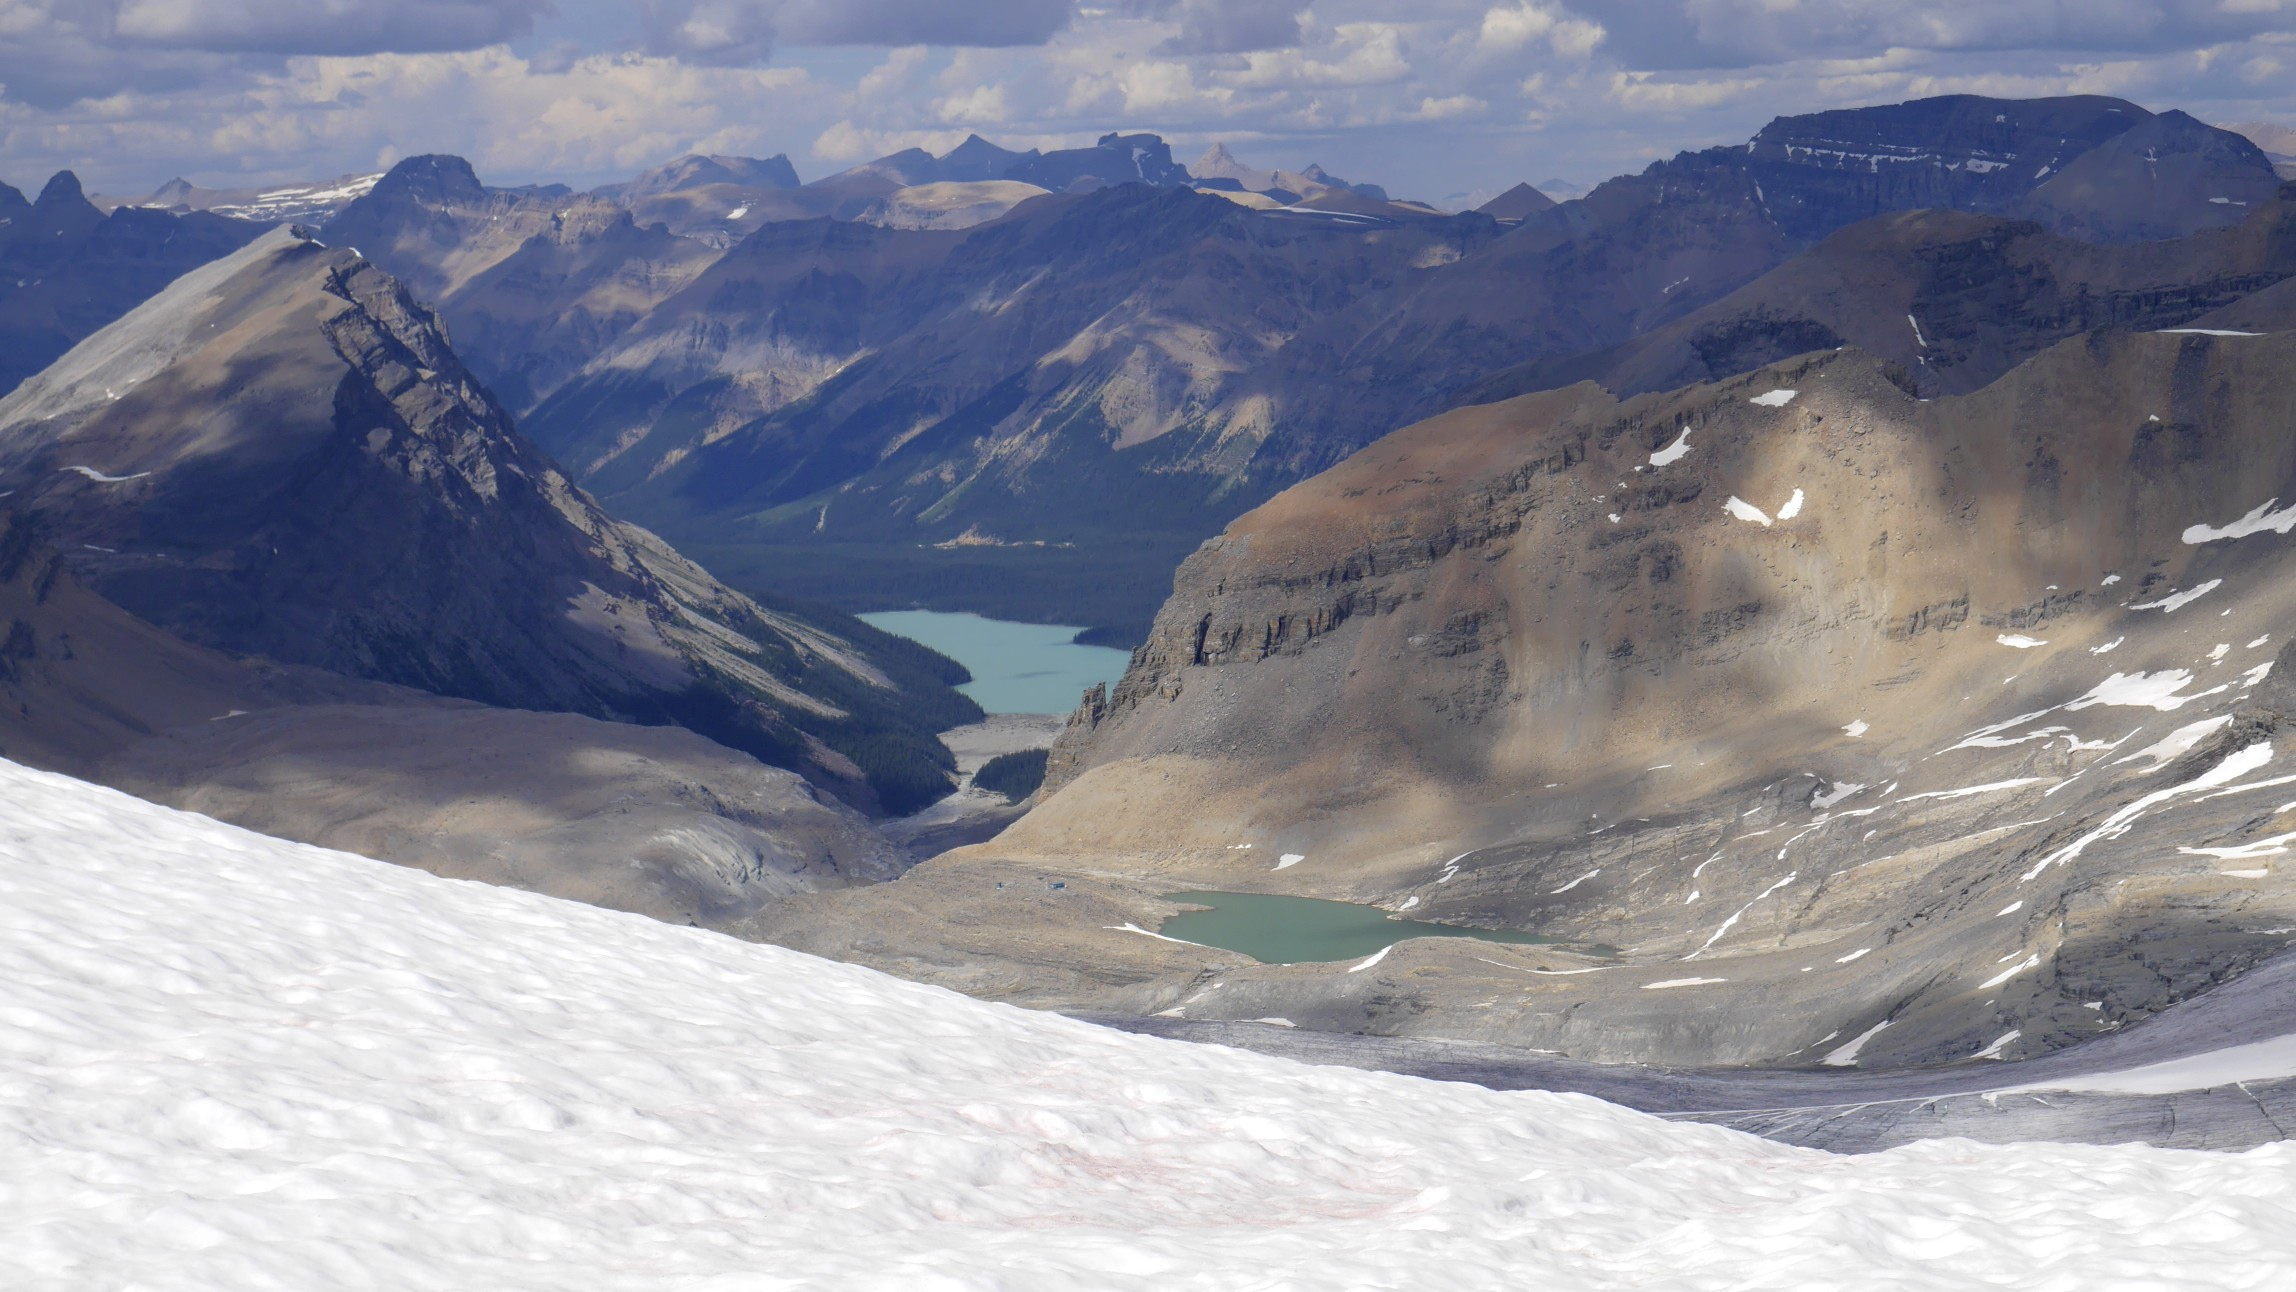 Peyto Lake and the Peyto Hut from the summit of Mt. Rhonda 3,062m